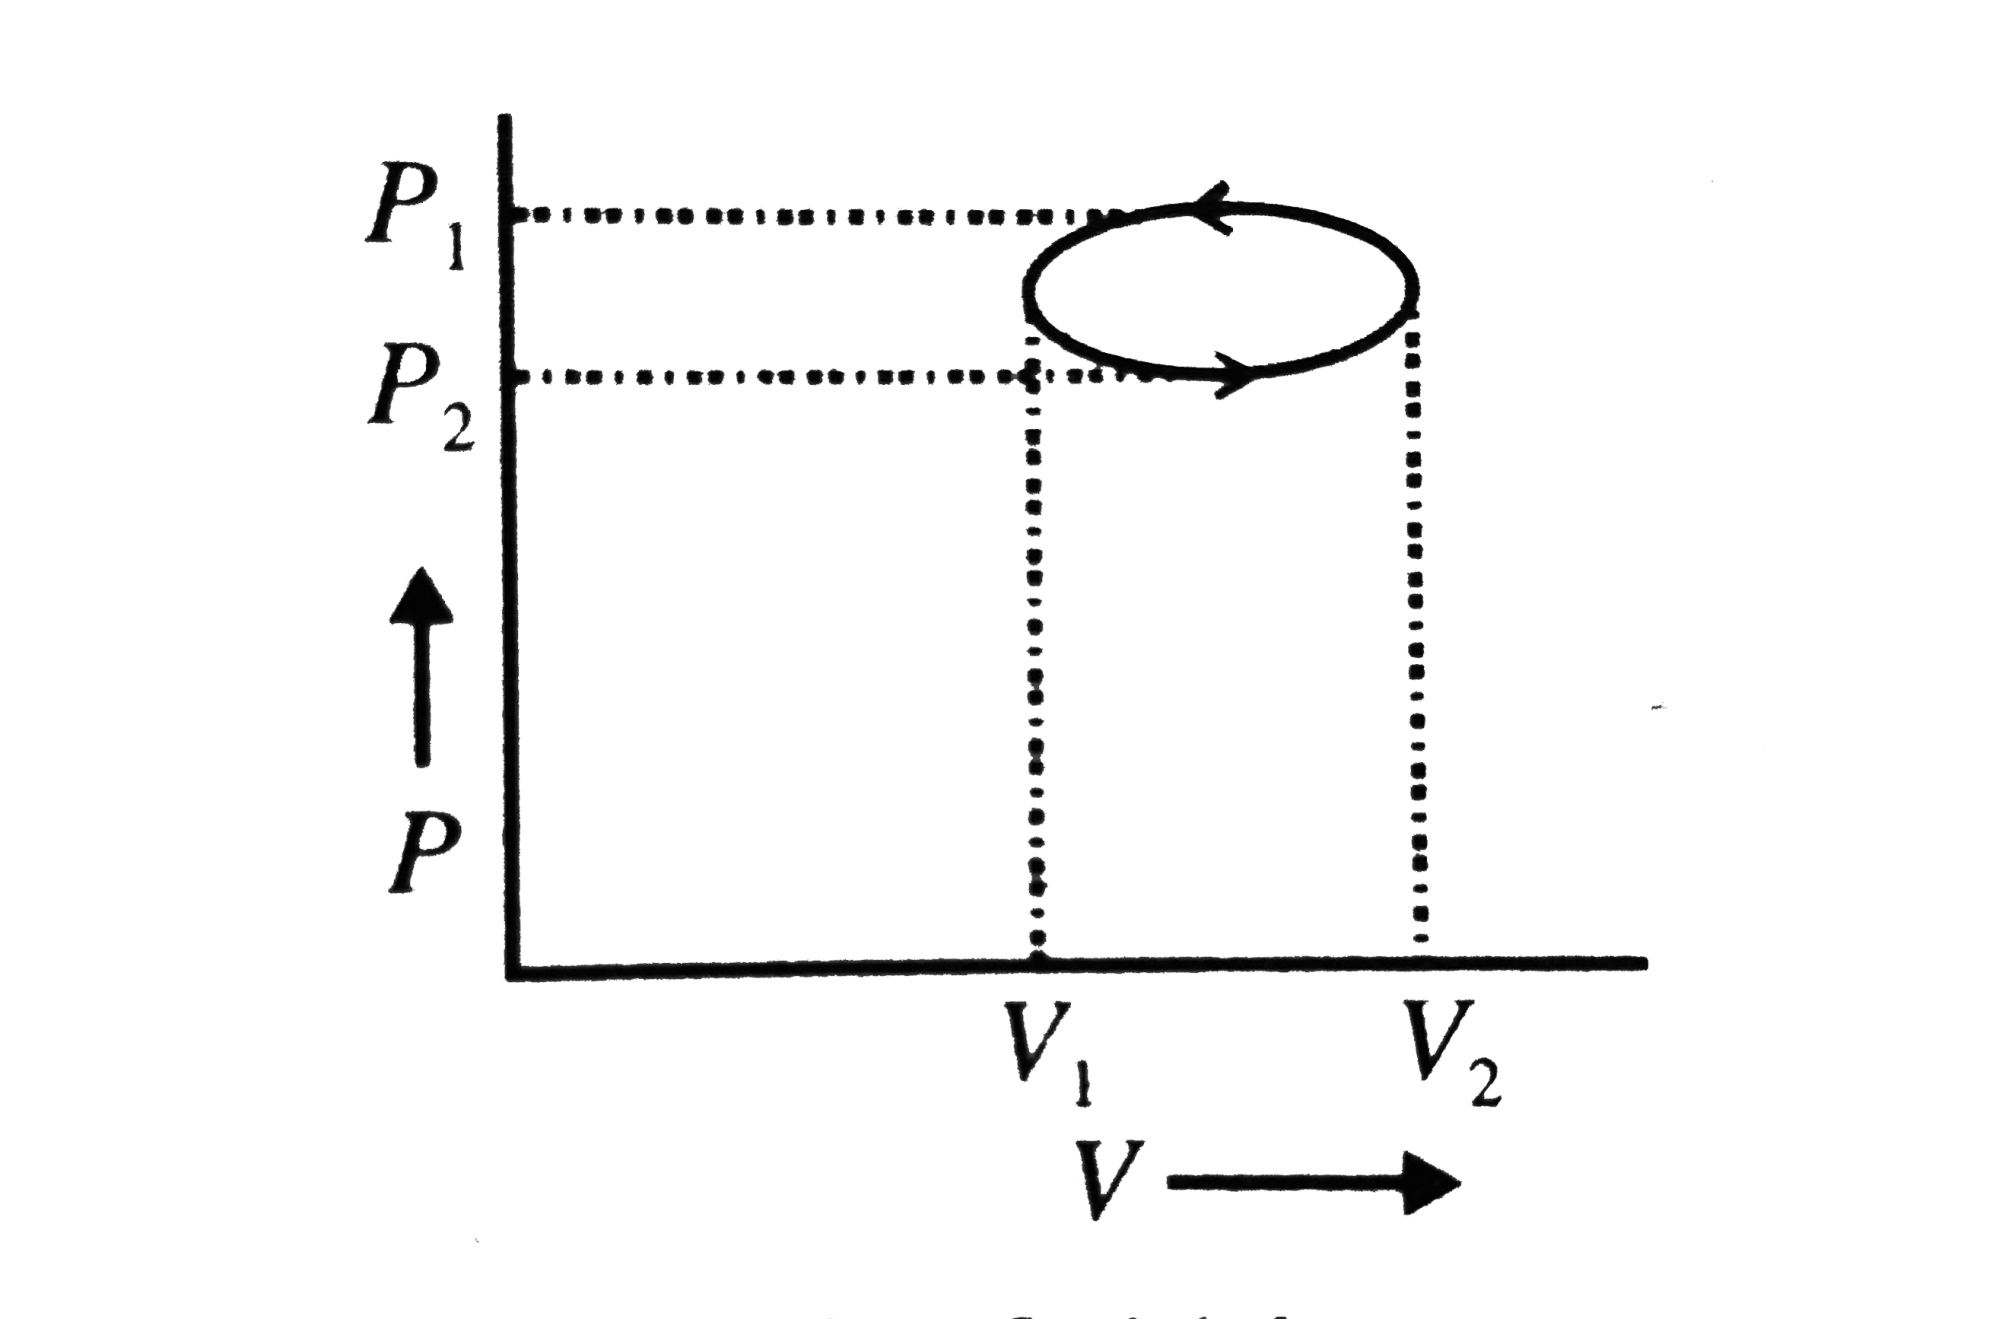 hight resolution of in the given elliptical p v diagram